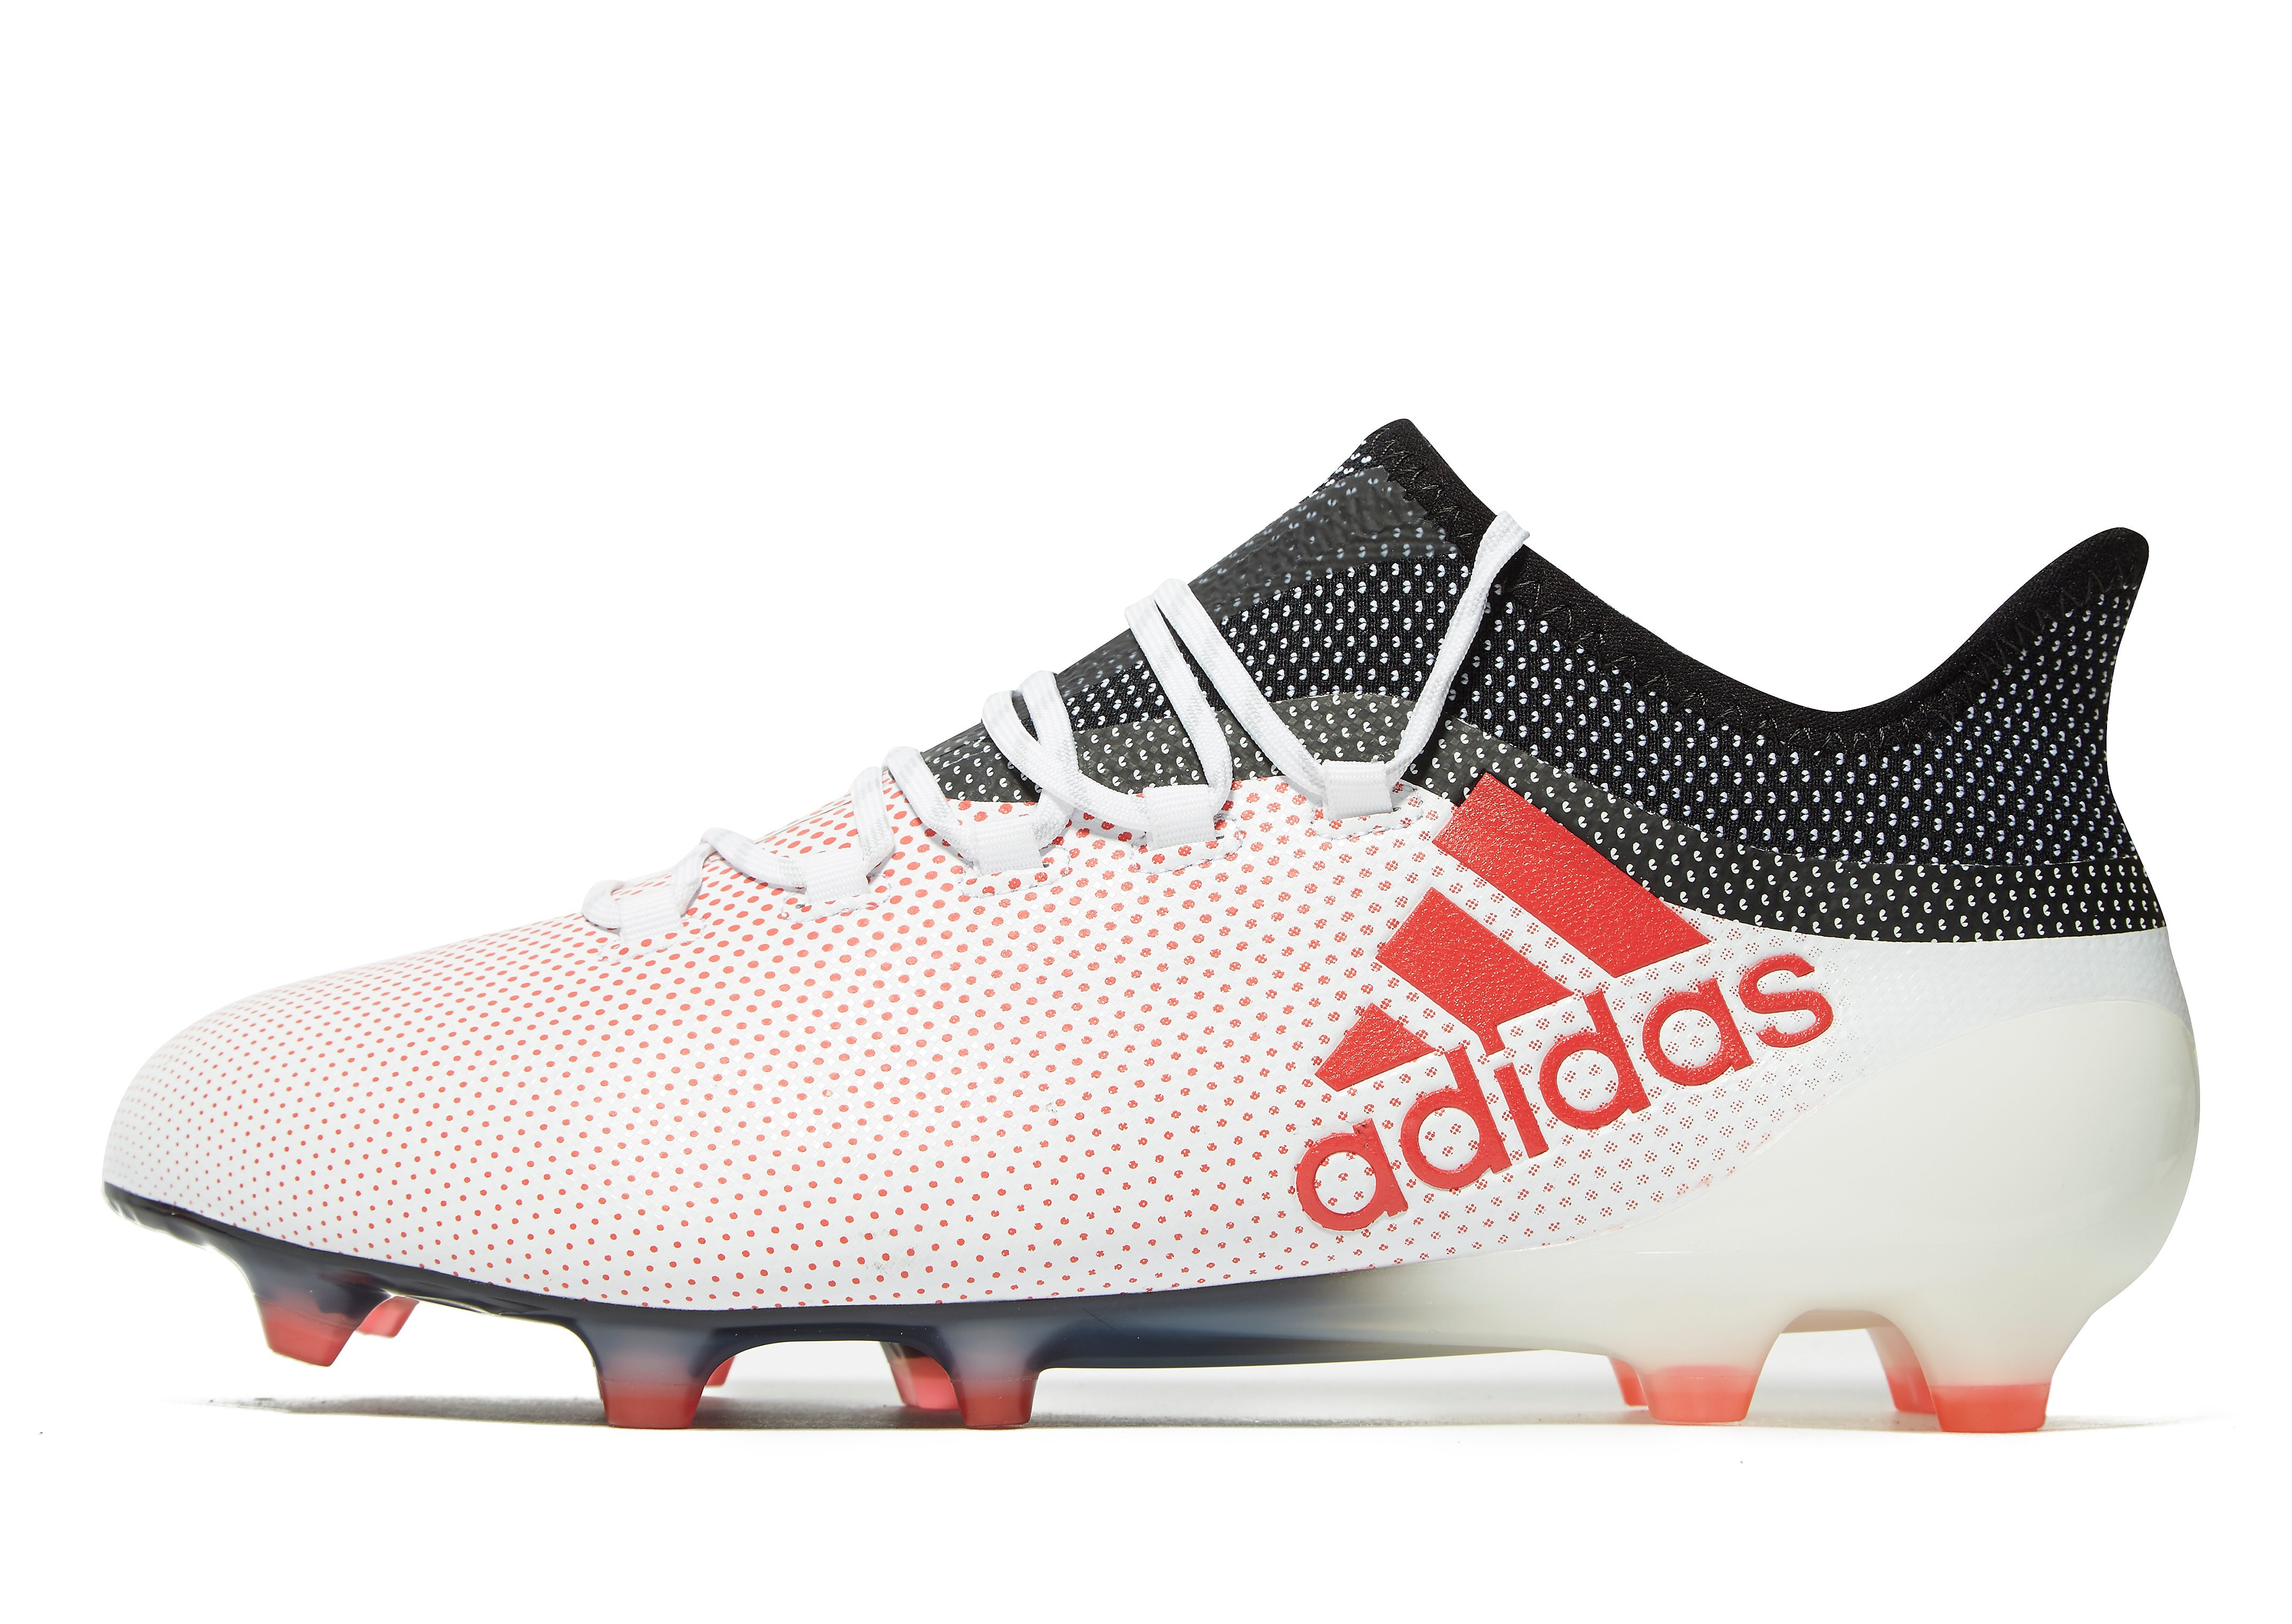 adidas Cold Blooded X 17.1 FG